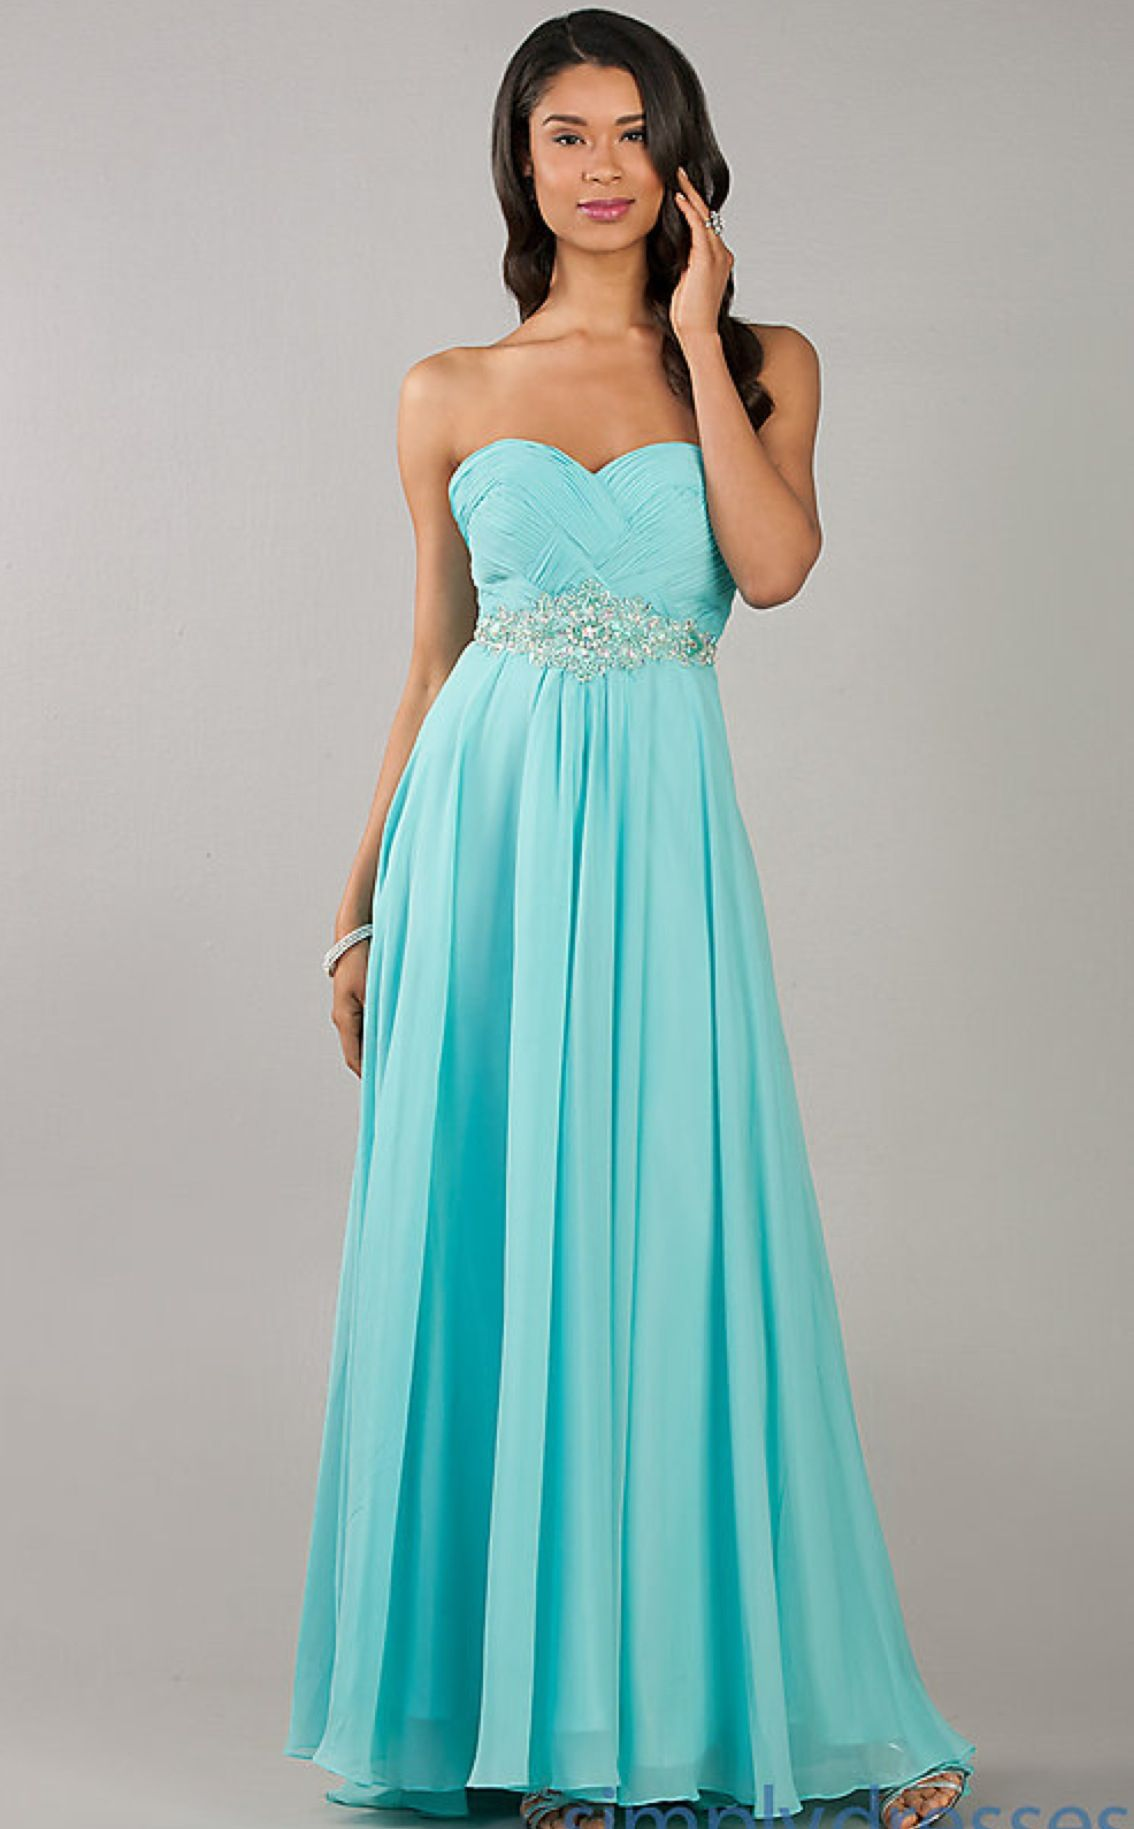 Tiffany Blue/Aqua dress | Things I love | Pinterest | Tiffany blue ...